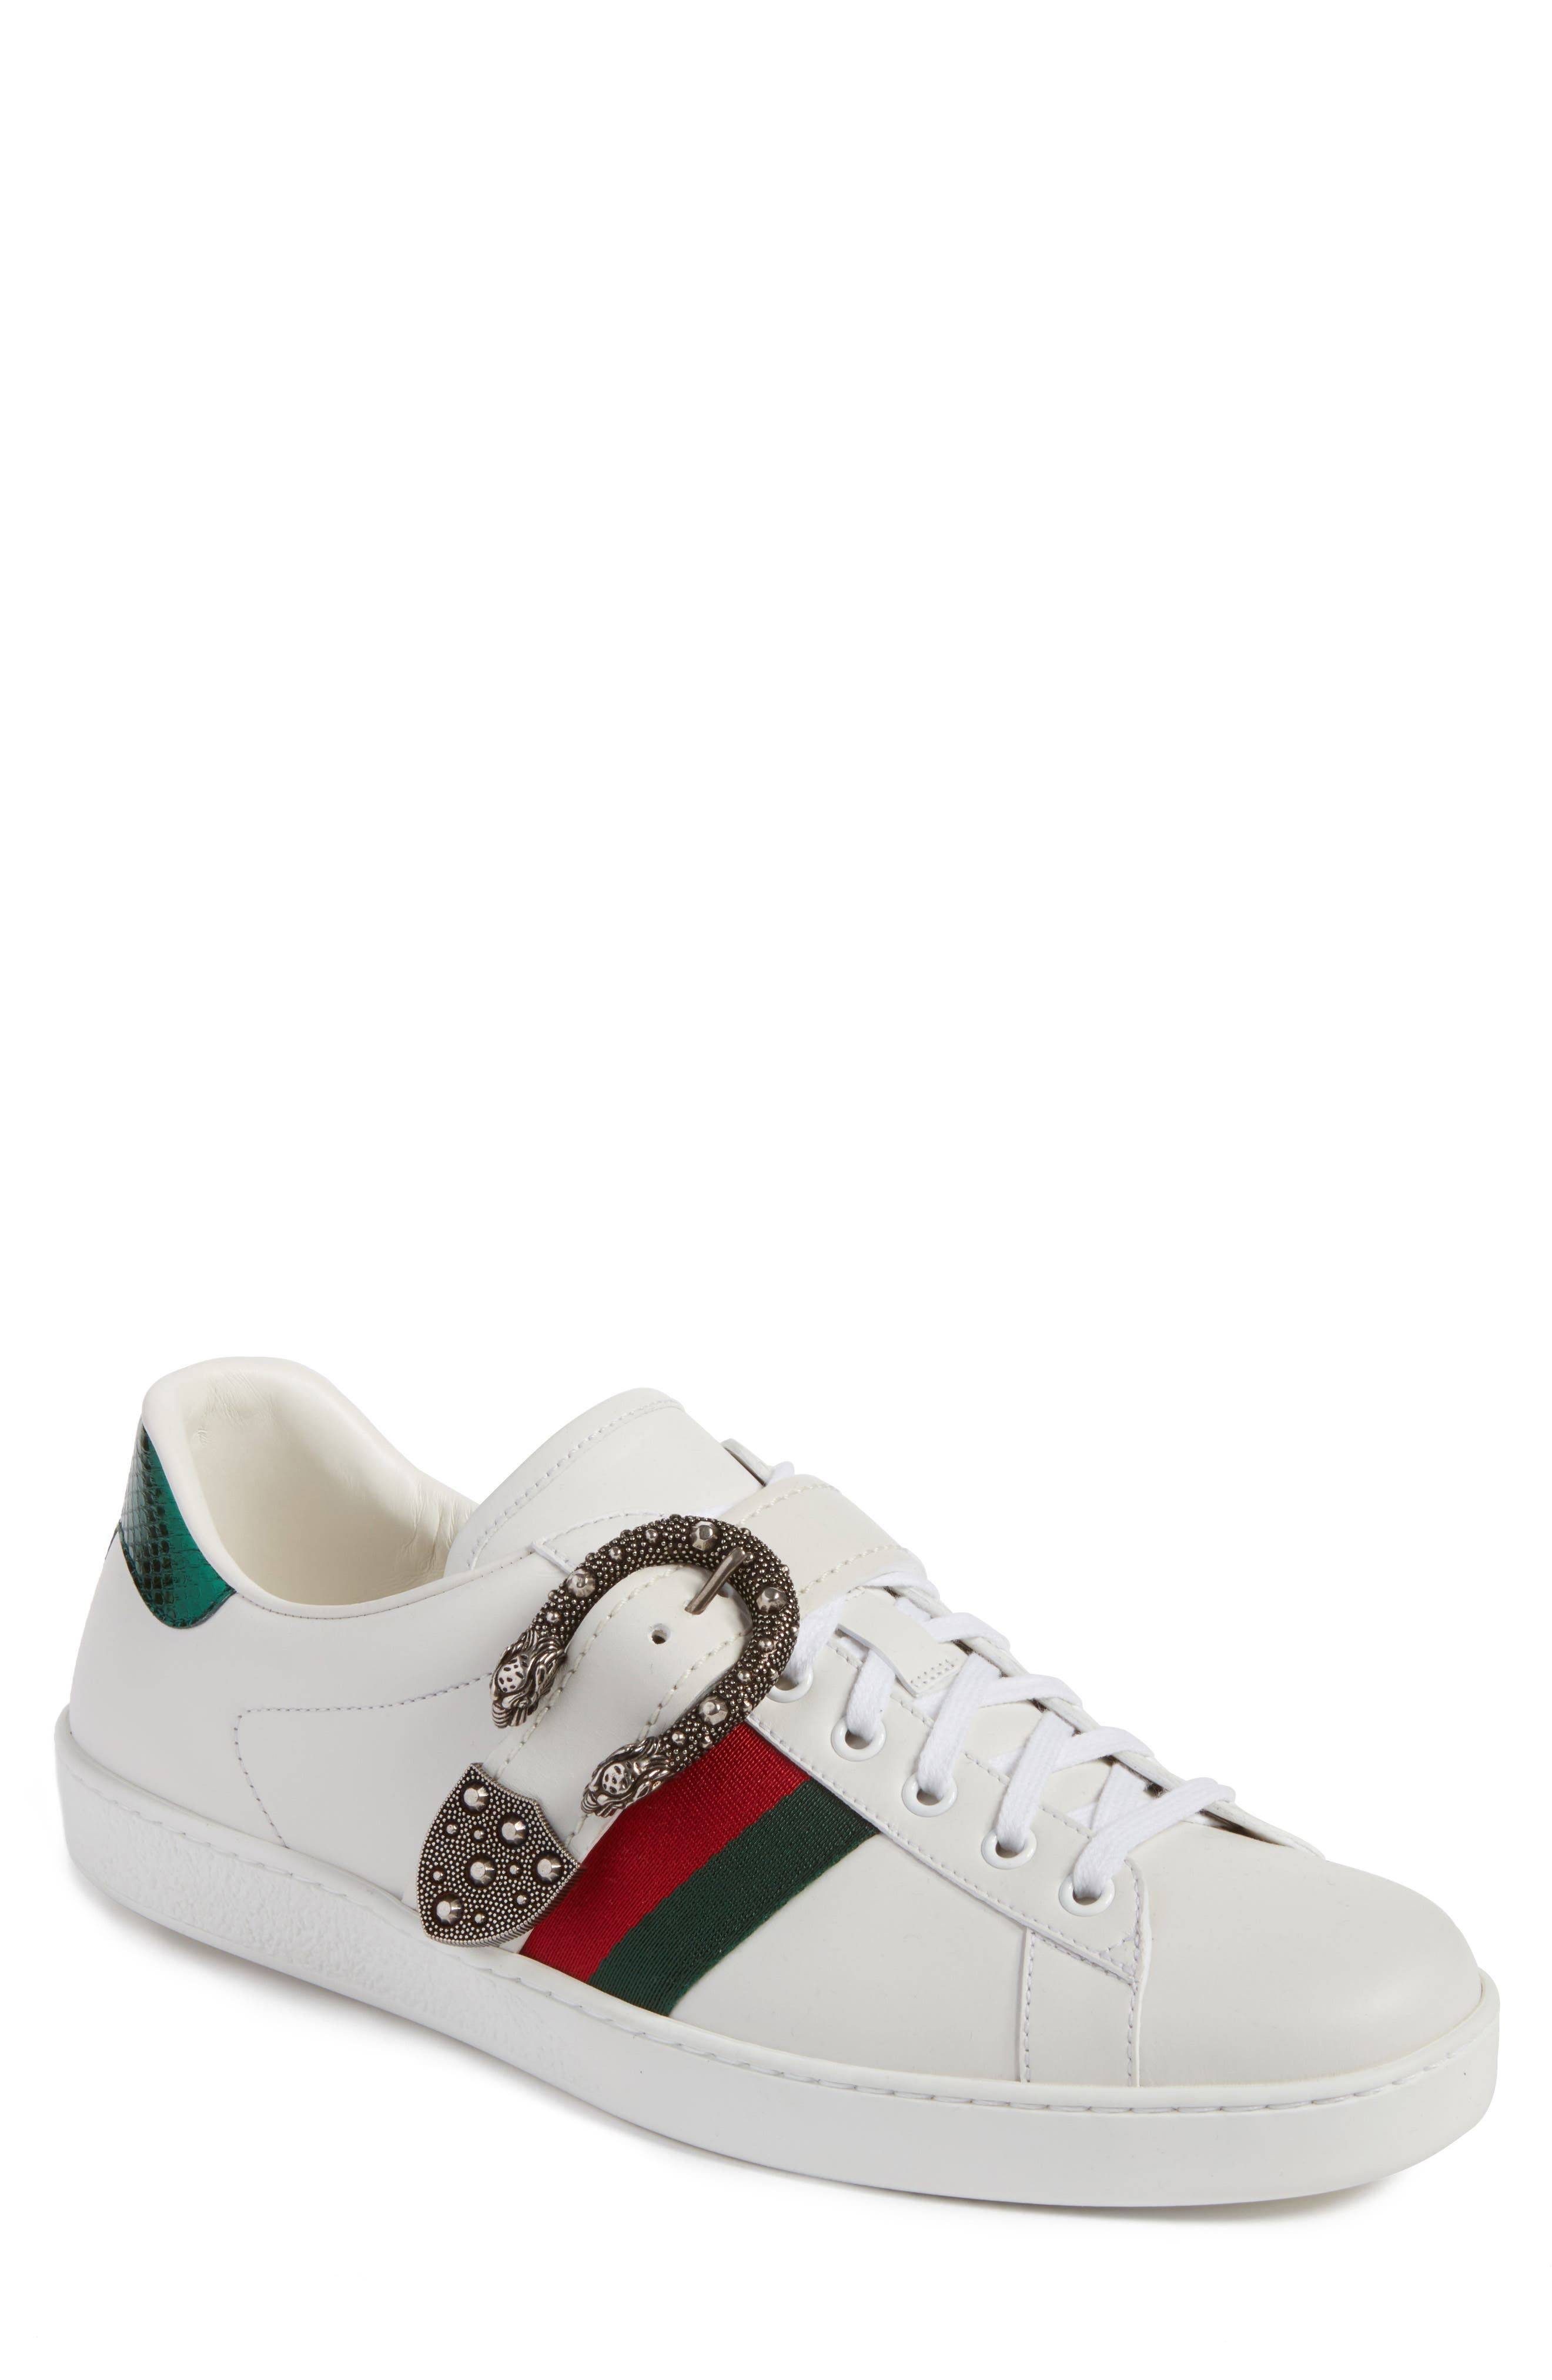 New Ace Dionysus Buckle Low Top Sneaker,                             Main thumbnail 1, color,                             White With Silver Hardware